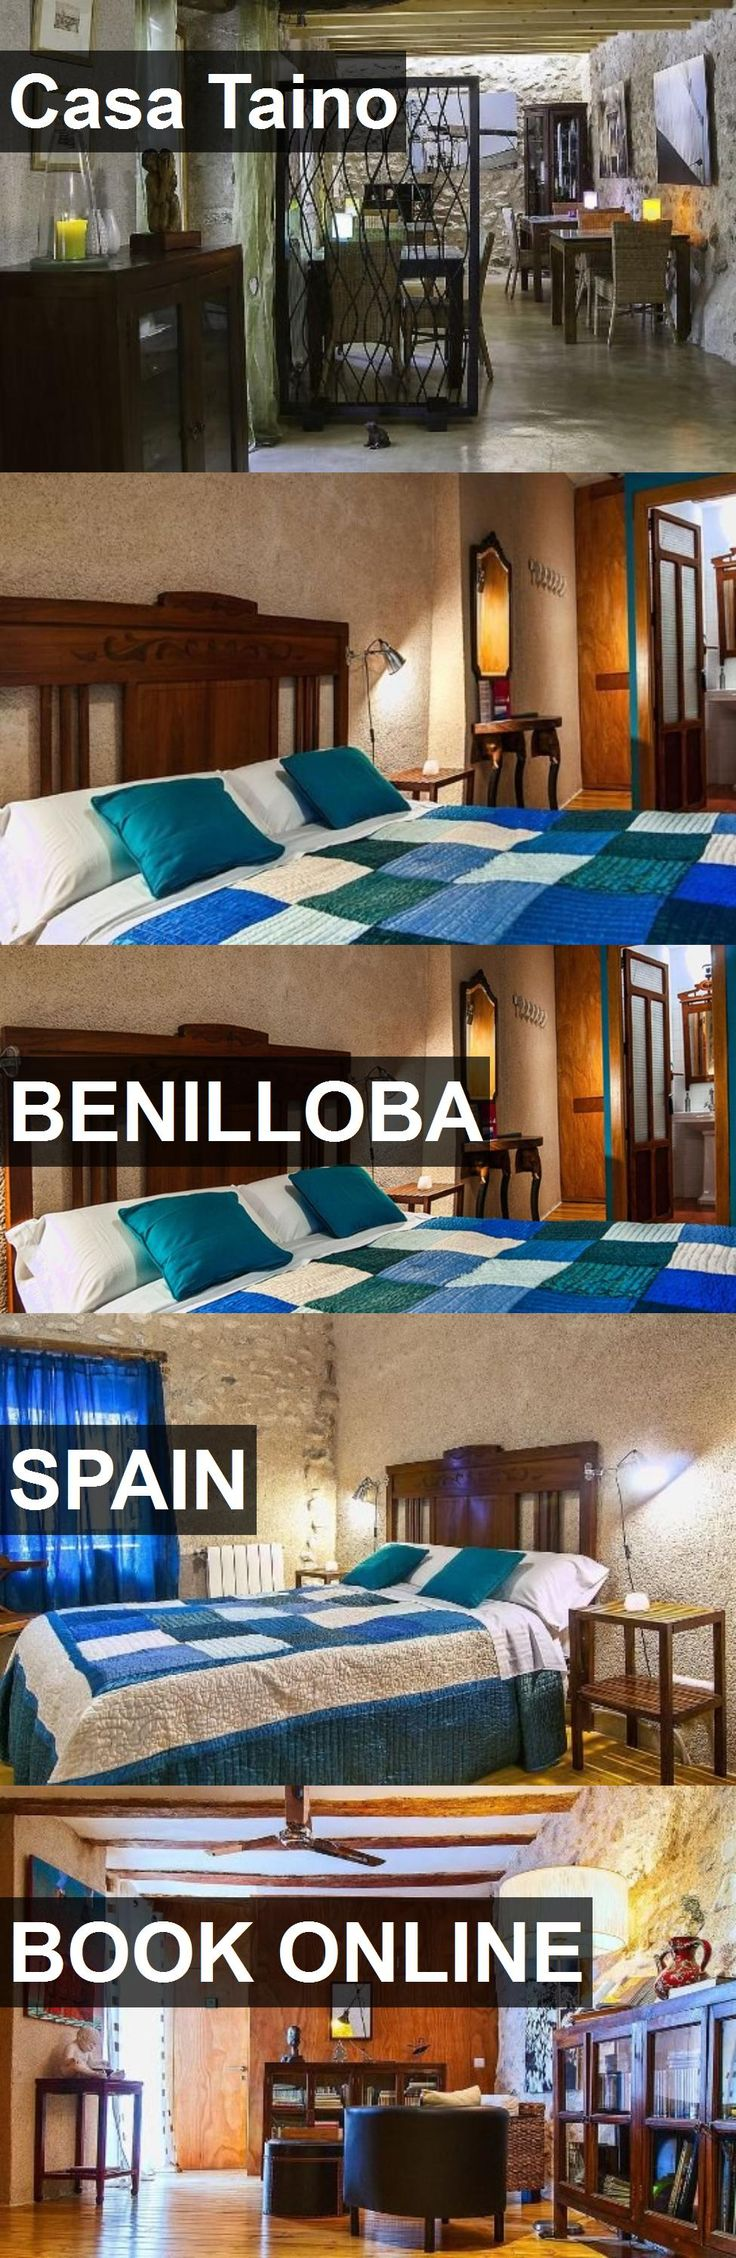 Hotel Casa Taino in Benilloba, Spain. For more information, photos, reviews and best prices please follow the link. #Spain #Benilloba #travel #vacation #hotel